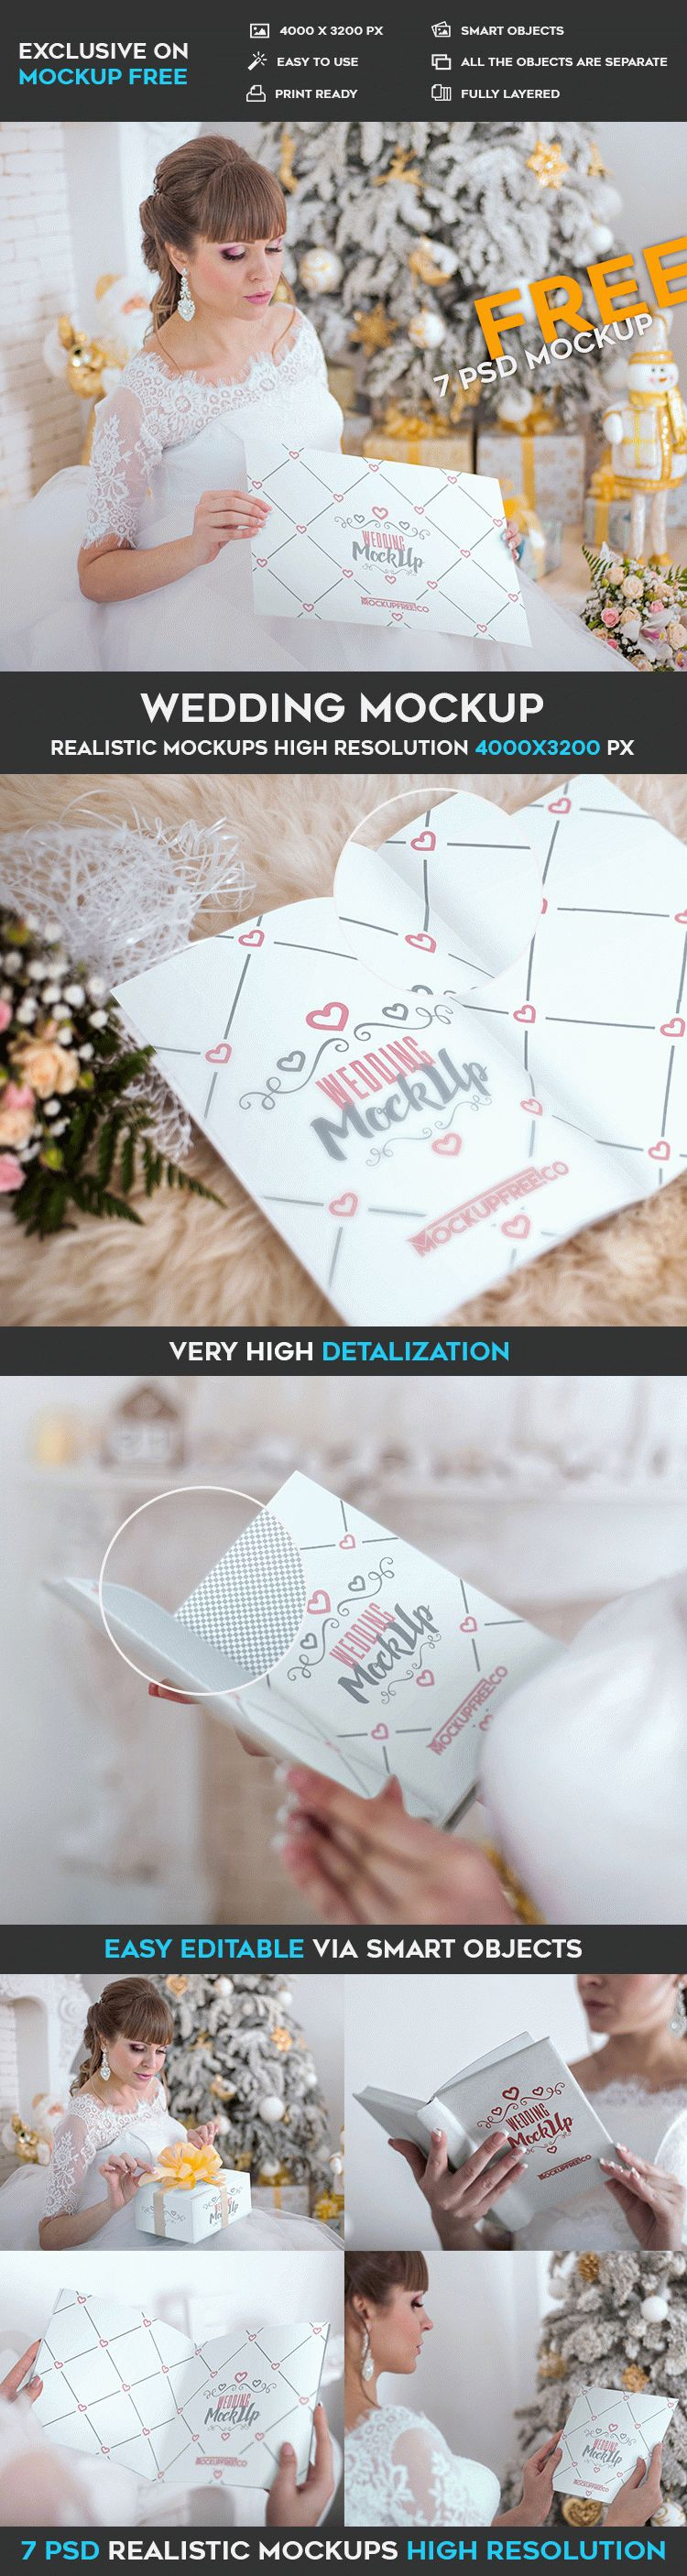 Wedding invitation, poster, book - 7 Free PSD Mockups